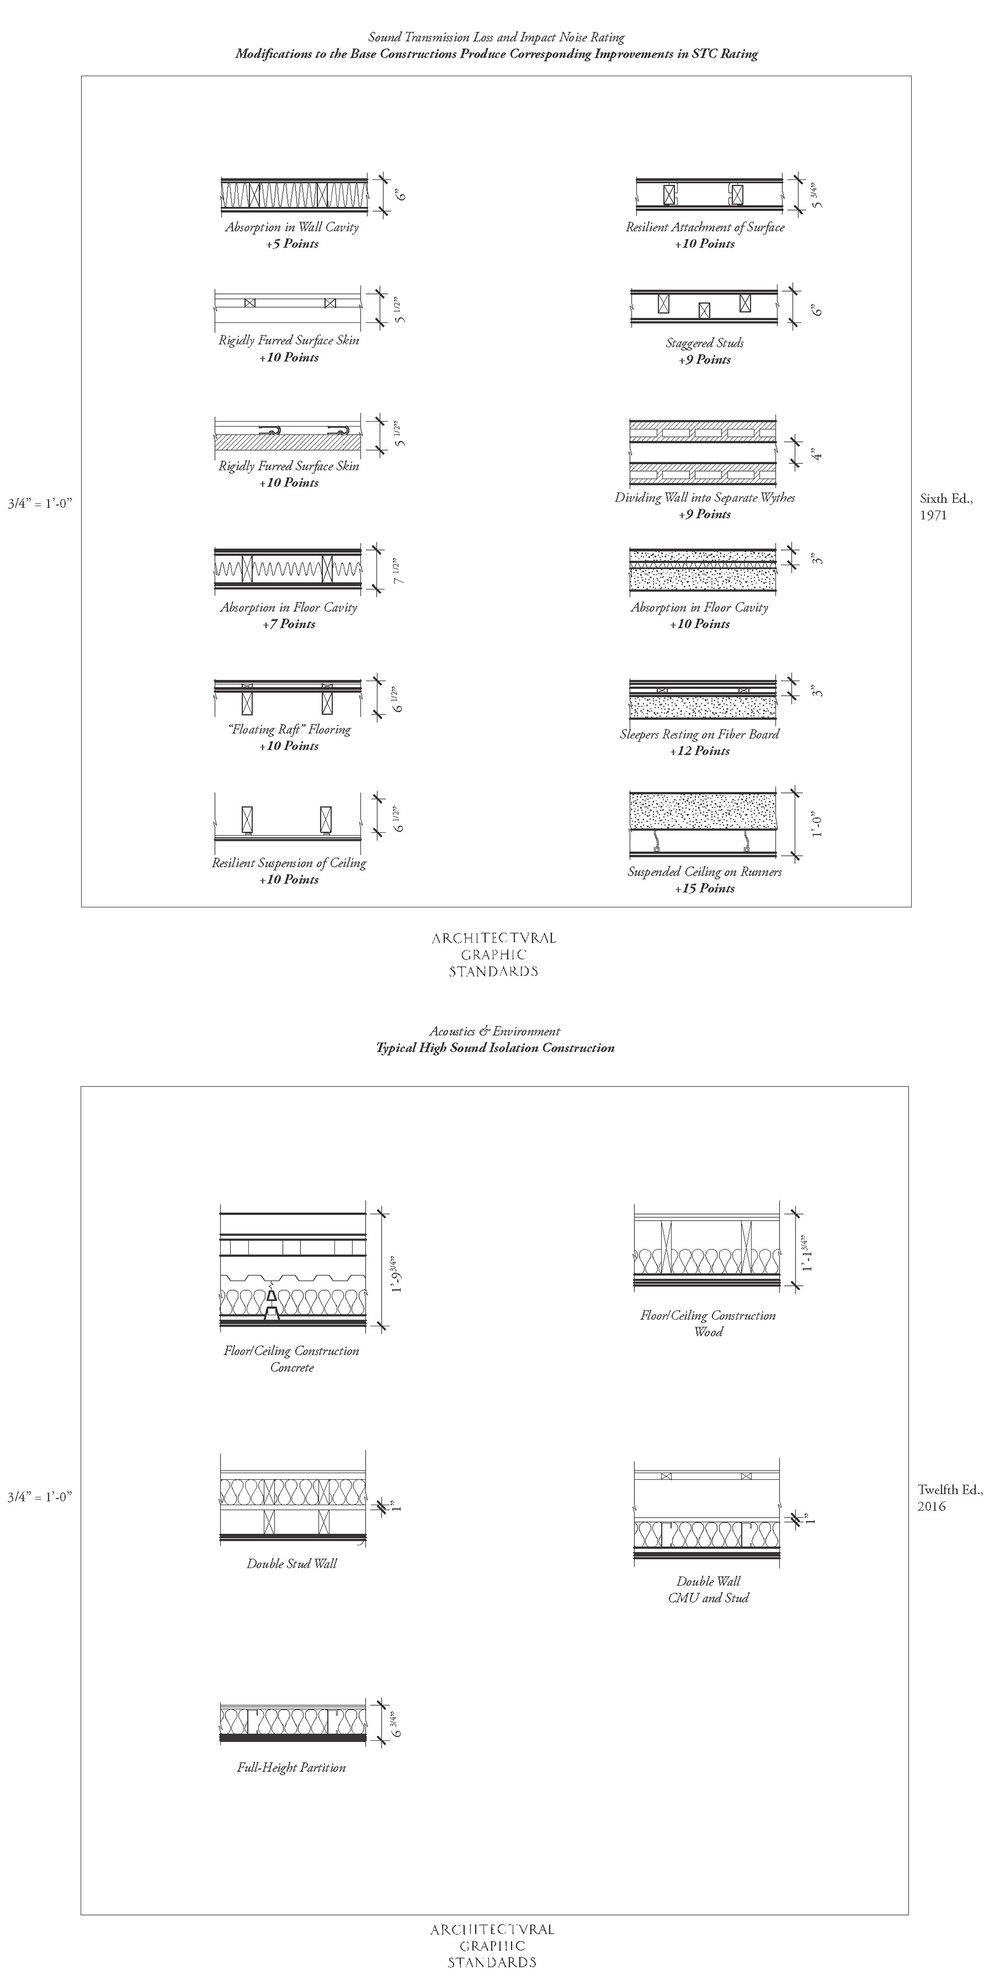 Research on history of wall assemblies under the chapter Acoustics in Architectural Graphic Standards.